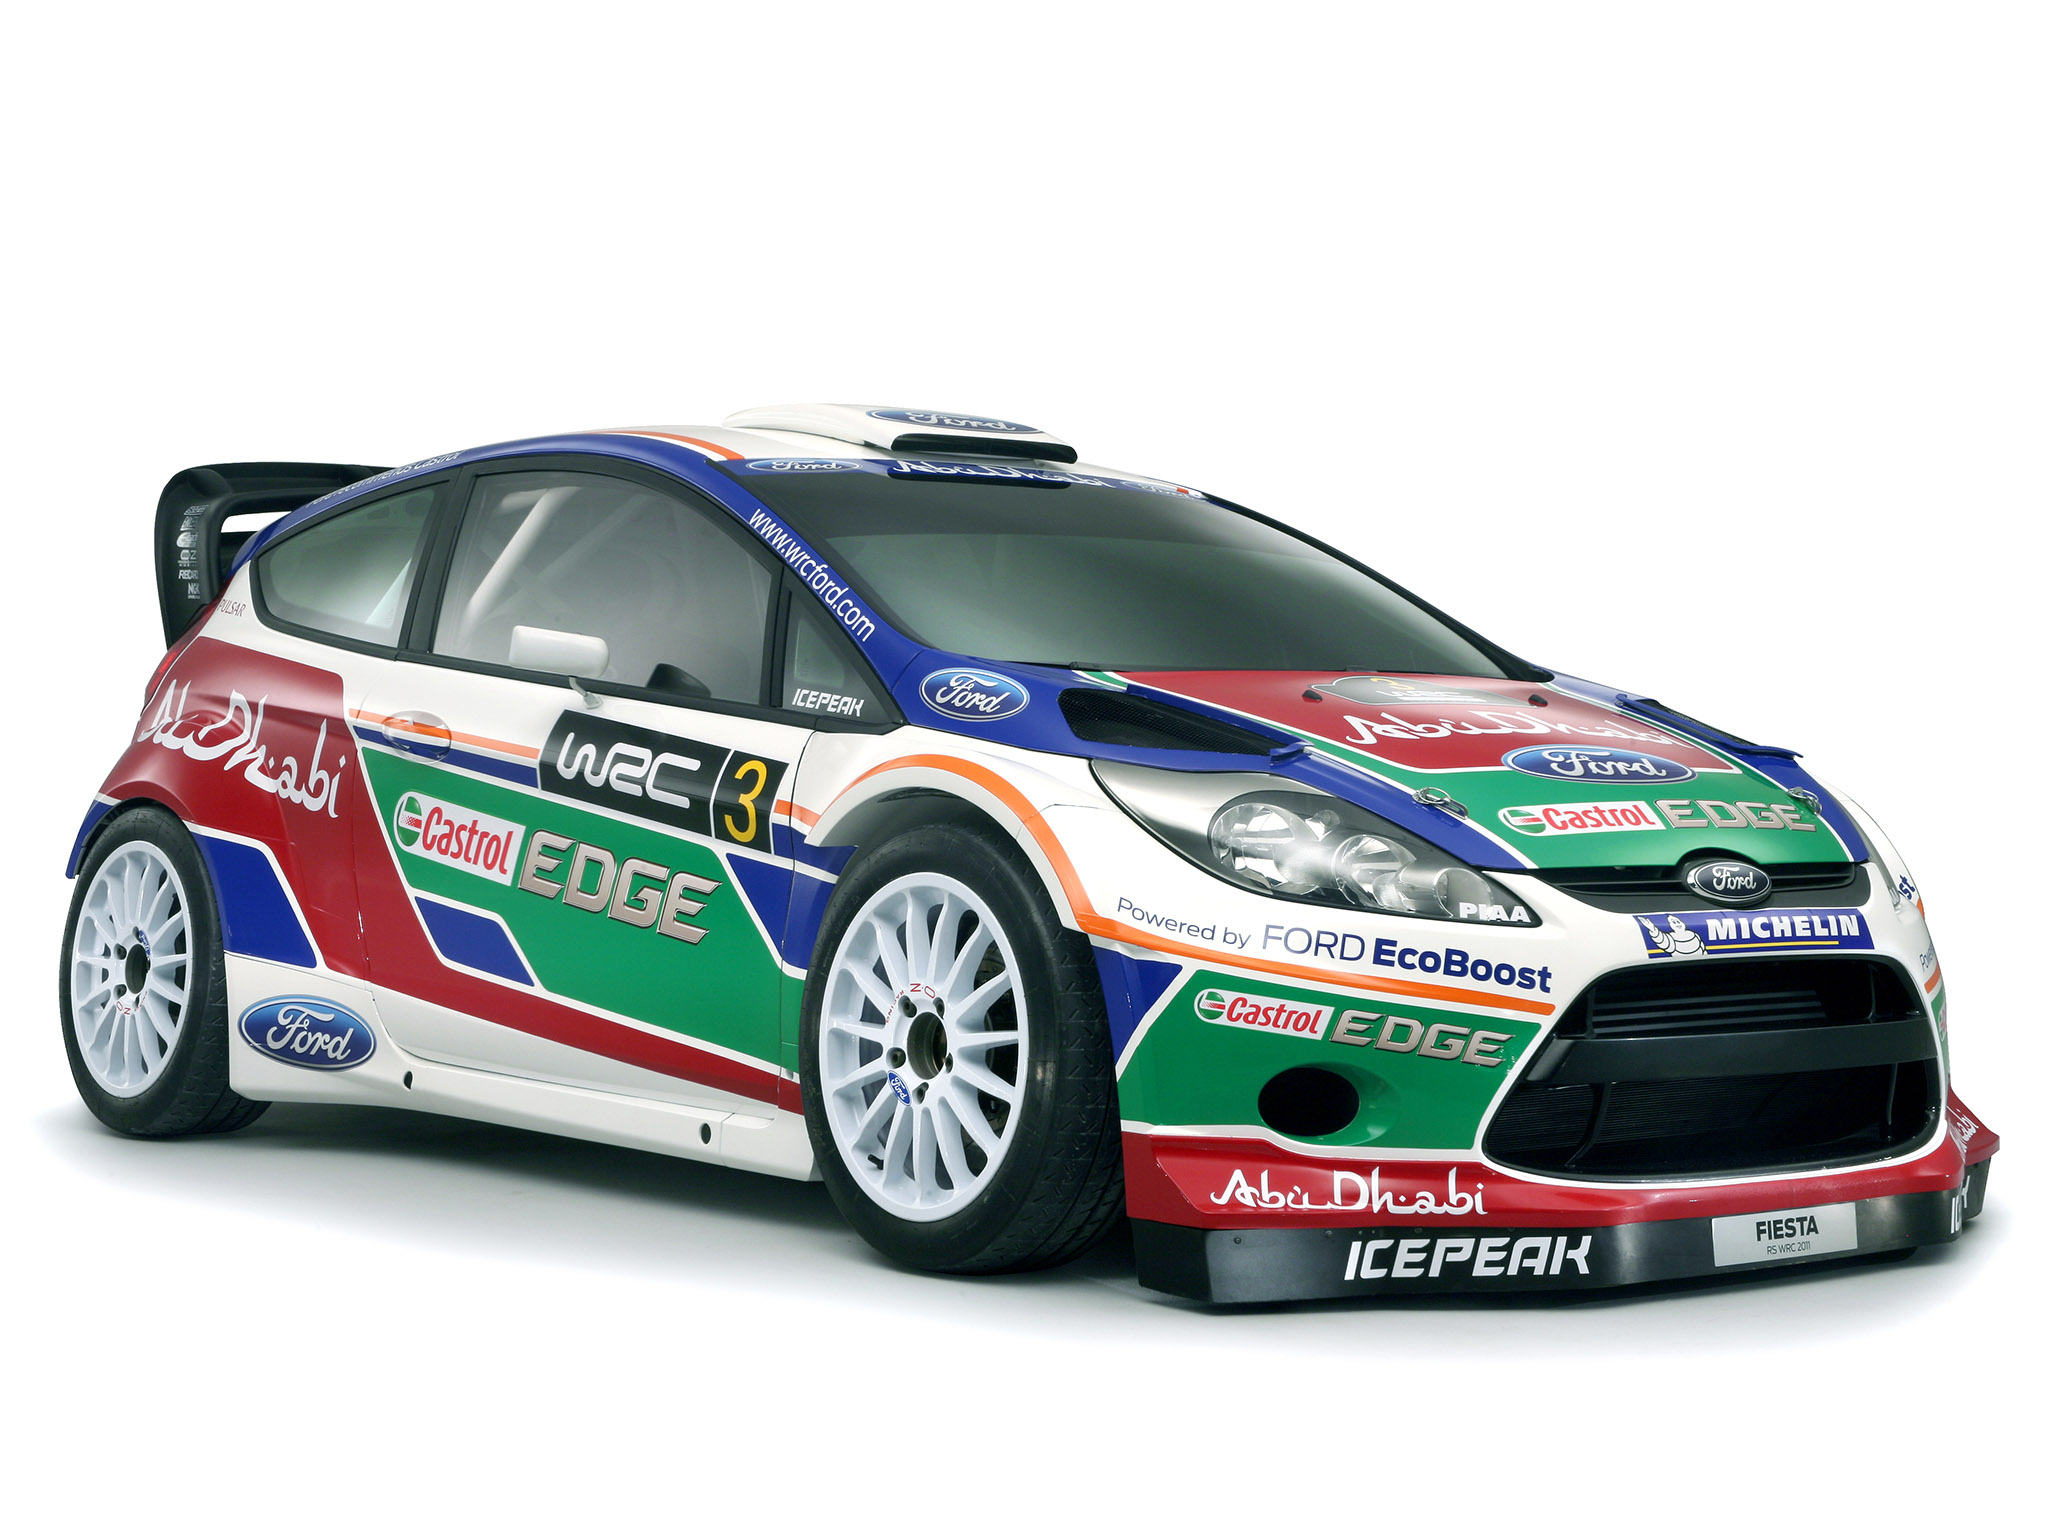 ford fiesta rs wrc 2011 ford fiesta rs wrc 2011 photo 08 car in pictures car photo gallery. Black Bedroom Furniture Sets. Home Design Ideas